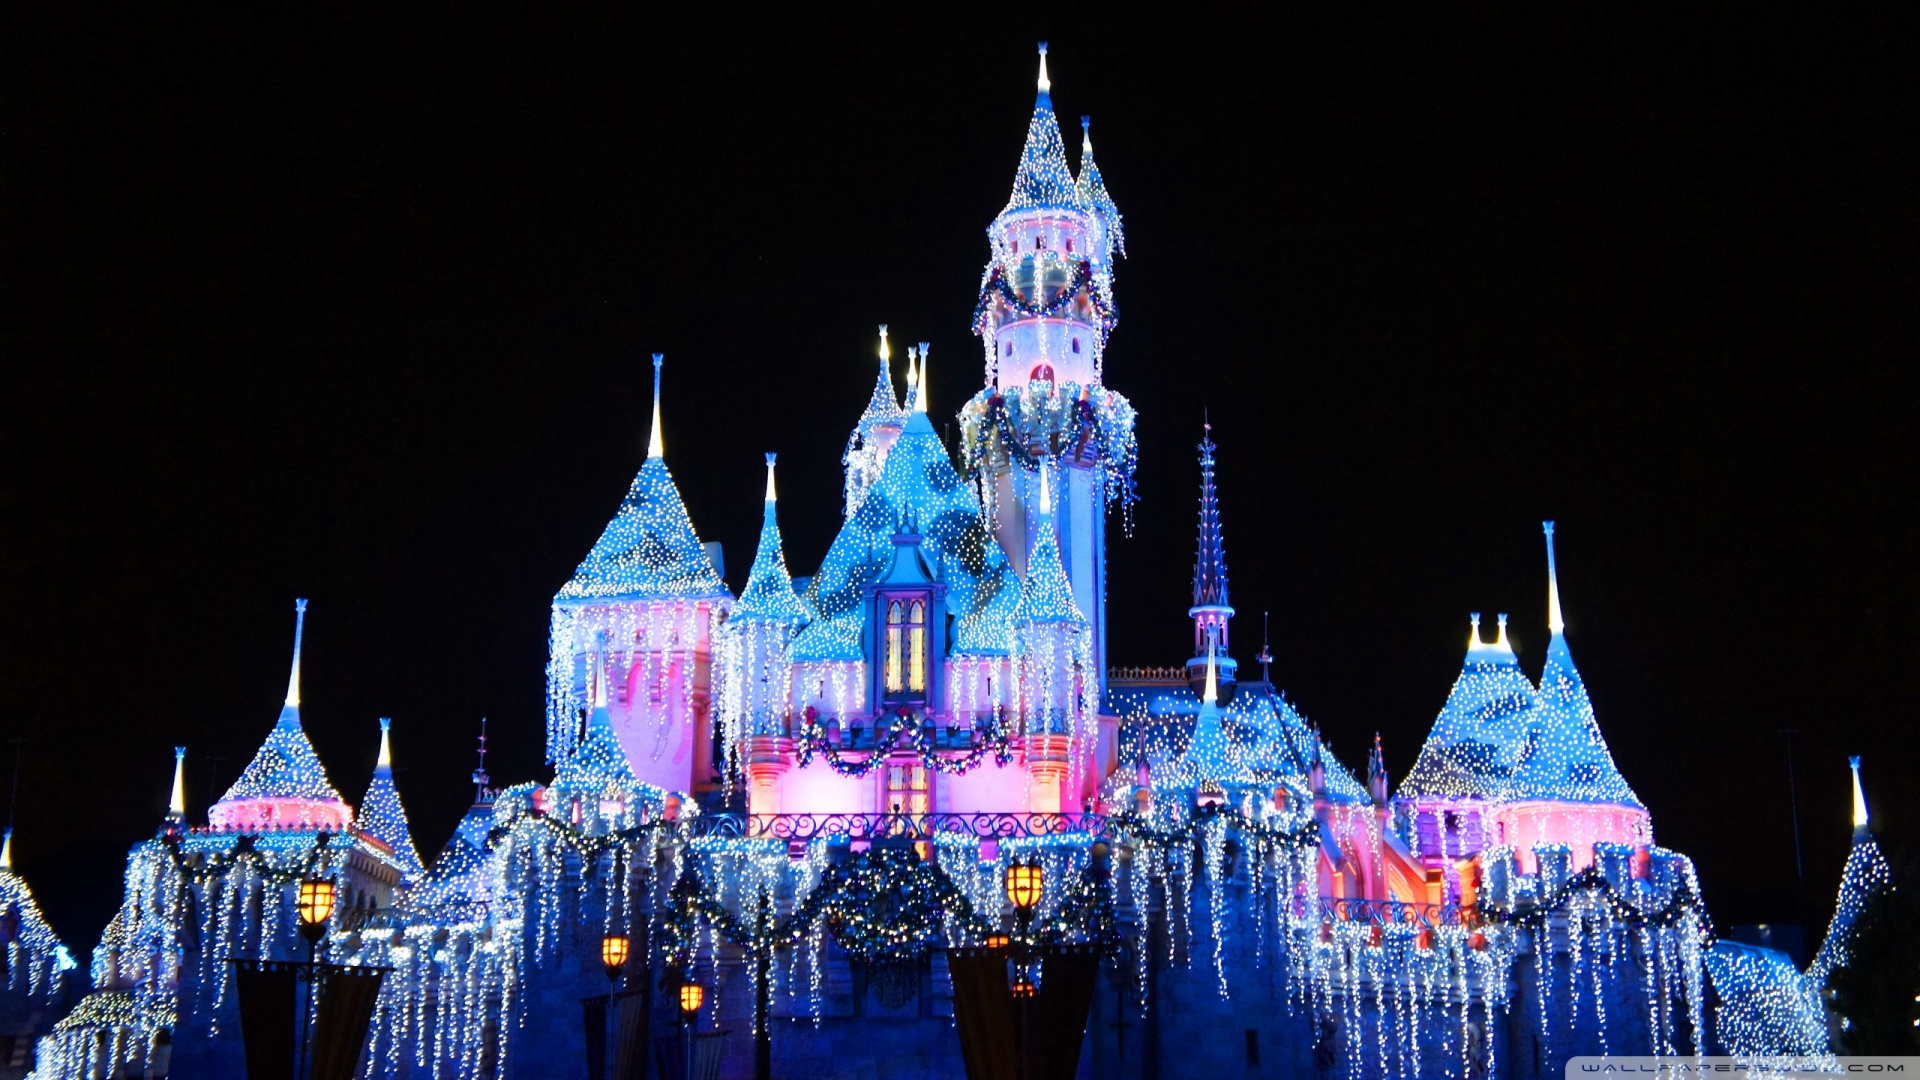 Download Disney Castle Wallpaper pictures in high definition or 1920x1080